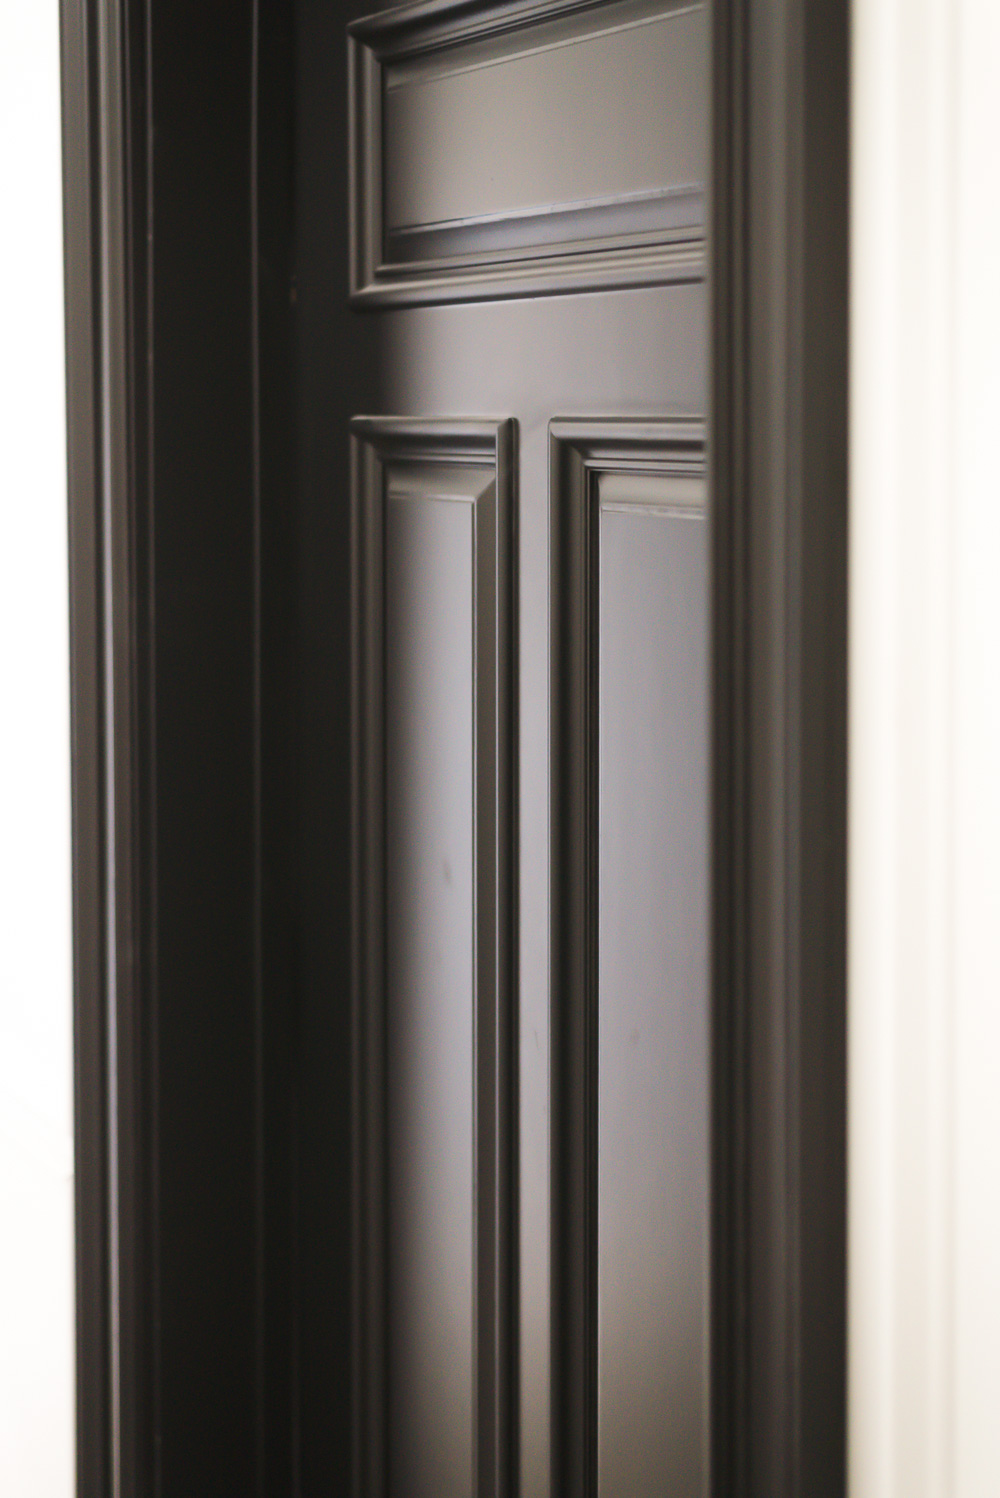 Black Interior Door from Home Depot with Heavy Moulding